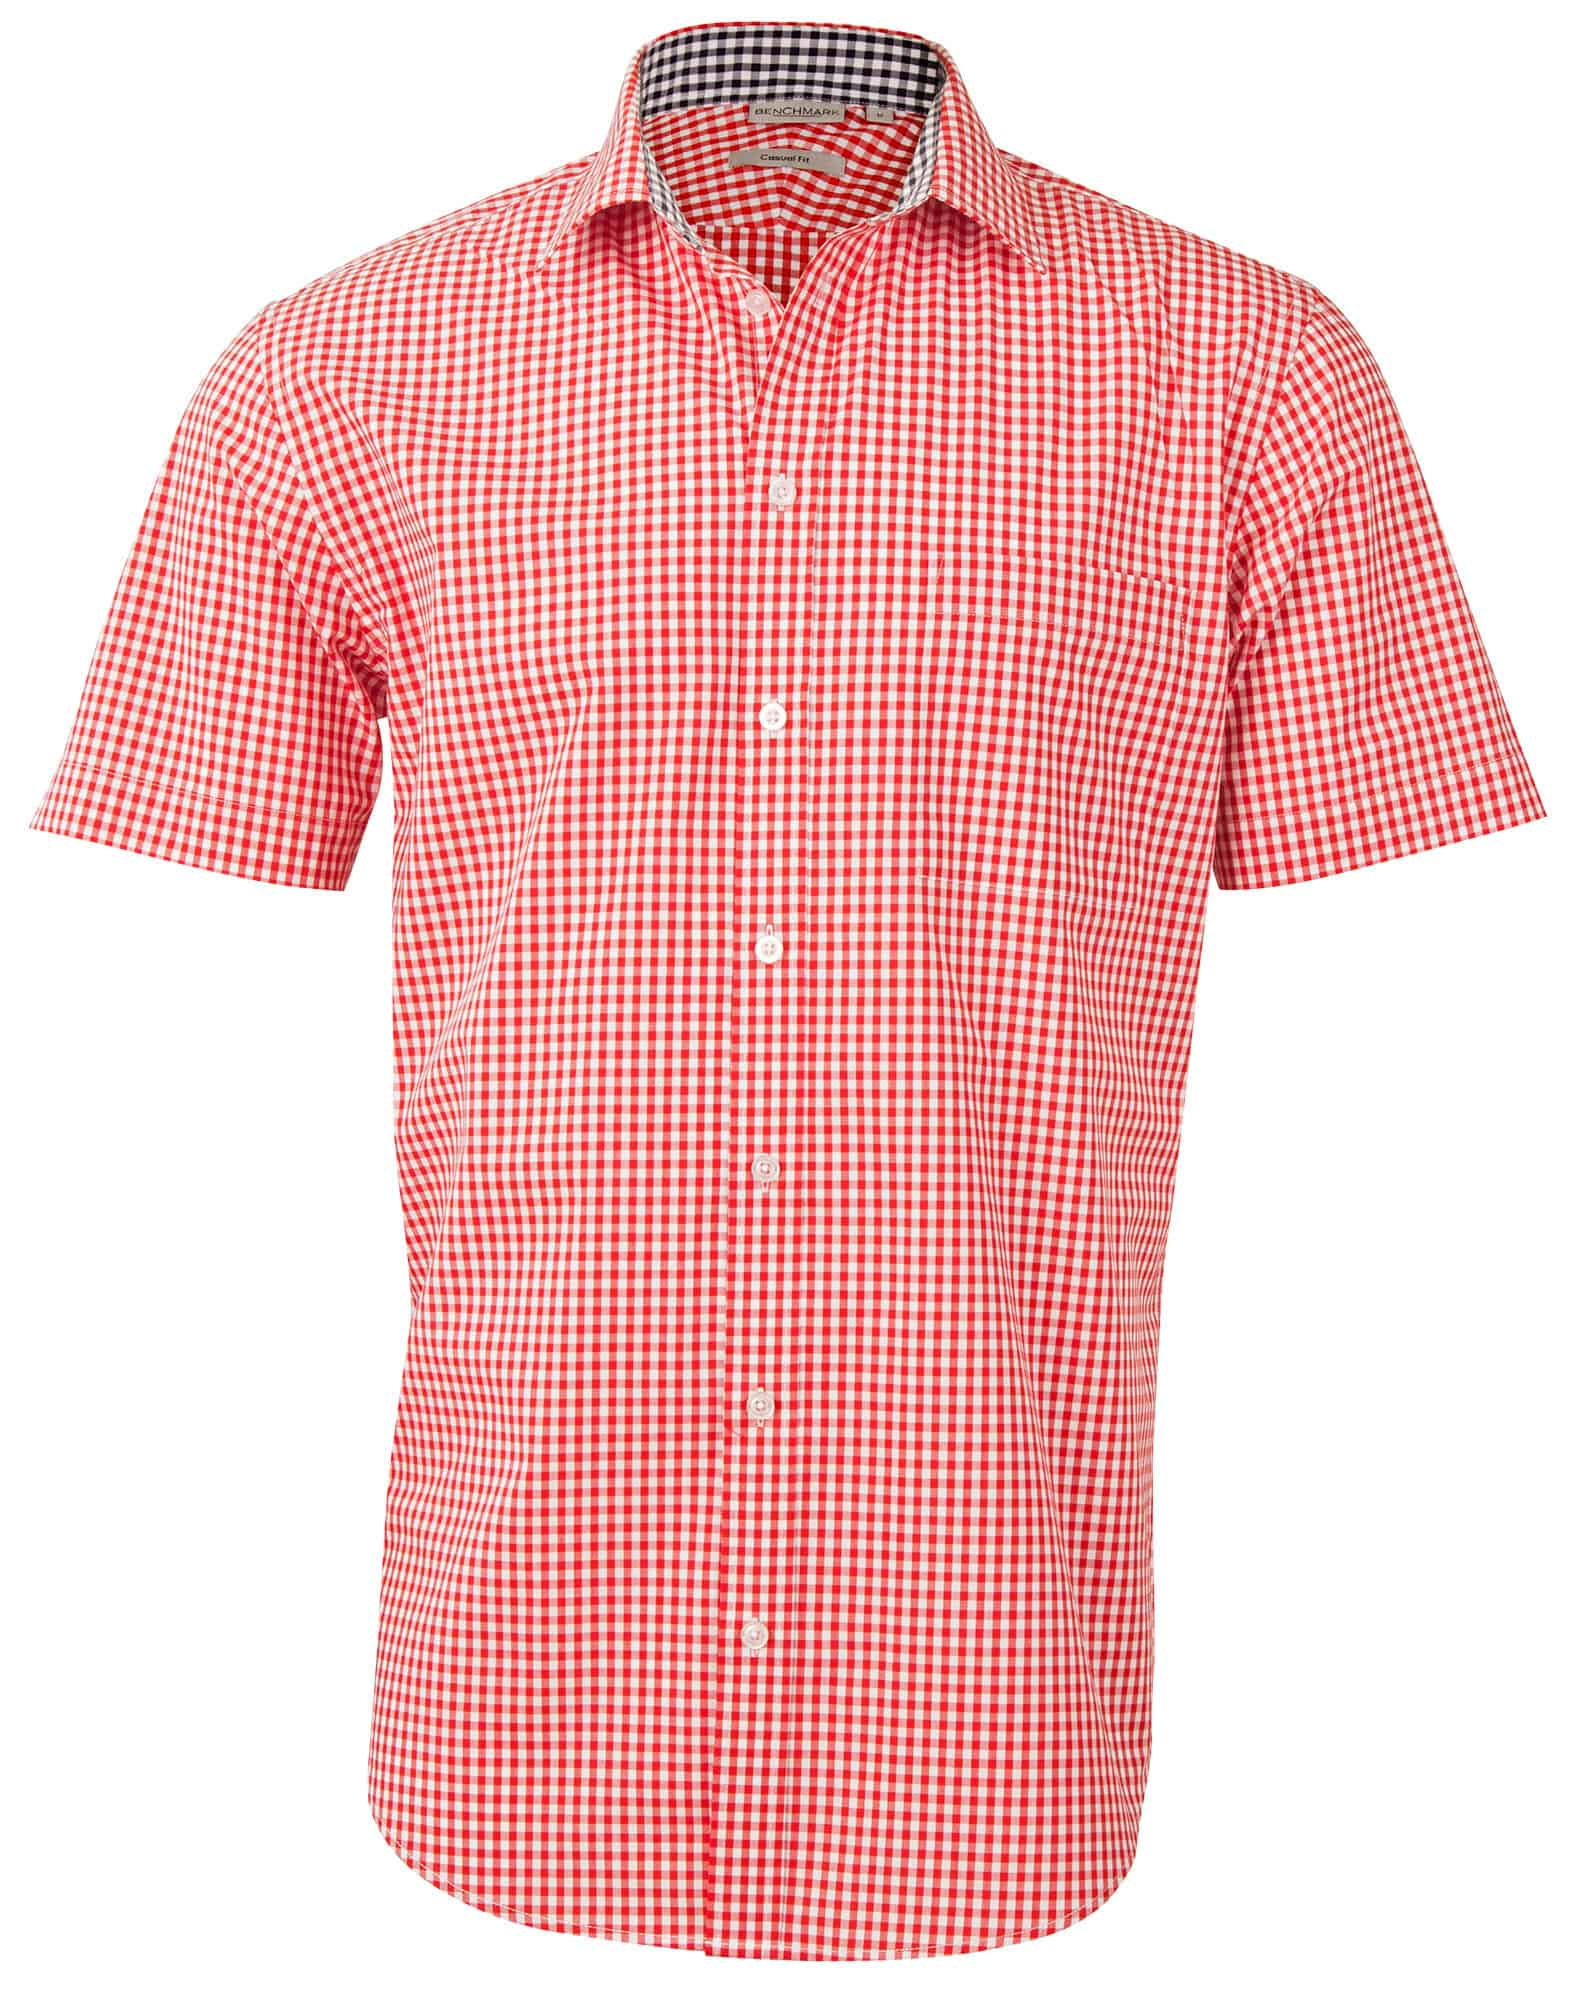 Men s Gingham Check Short Sleeve Shirt Publicity Promotional Products